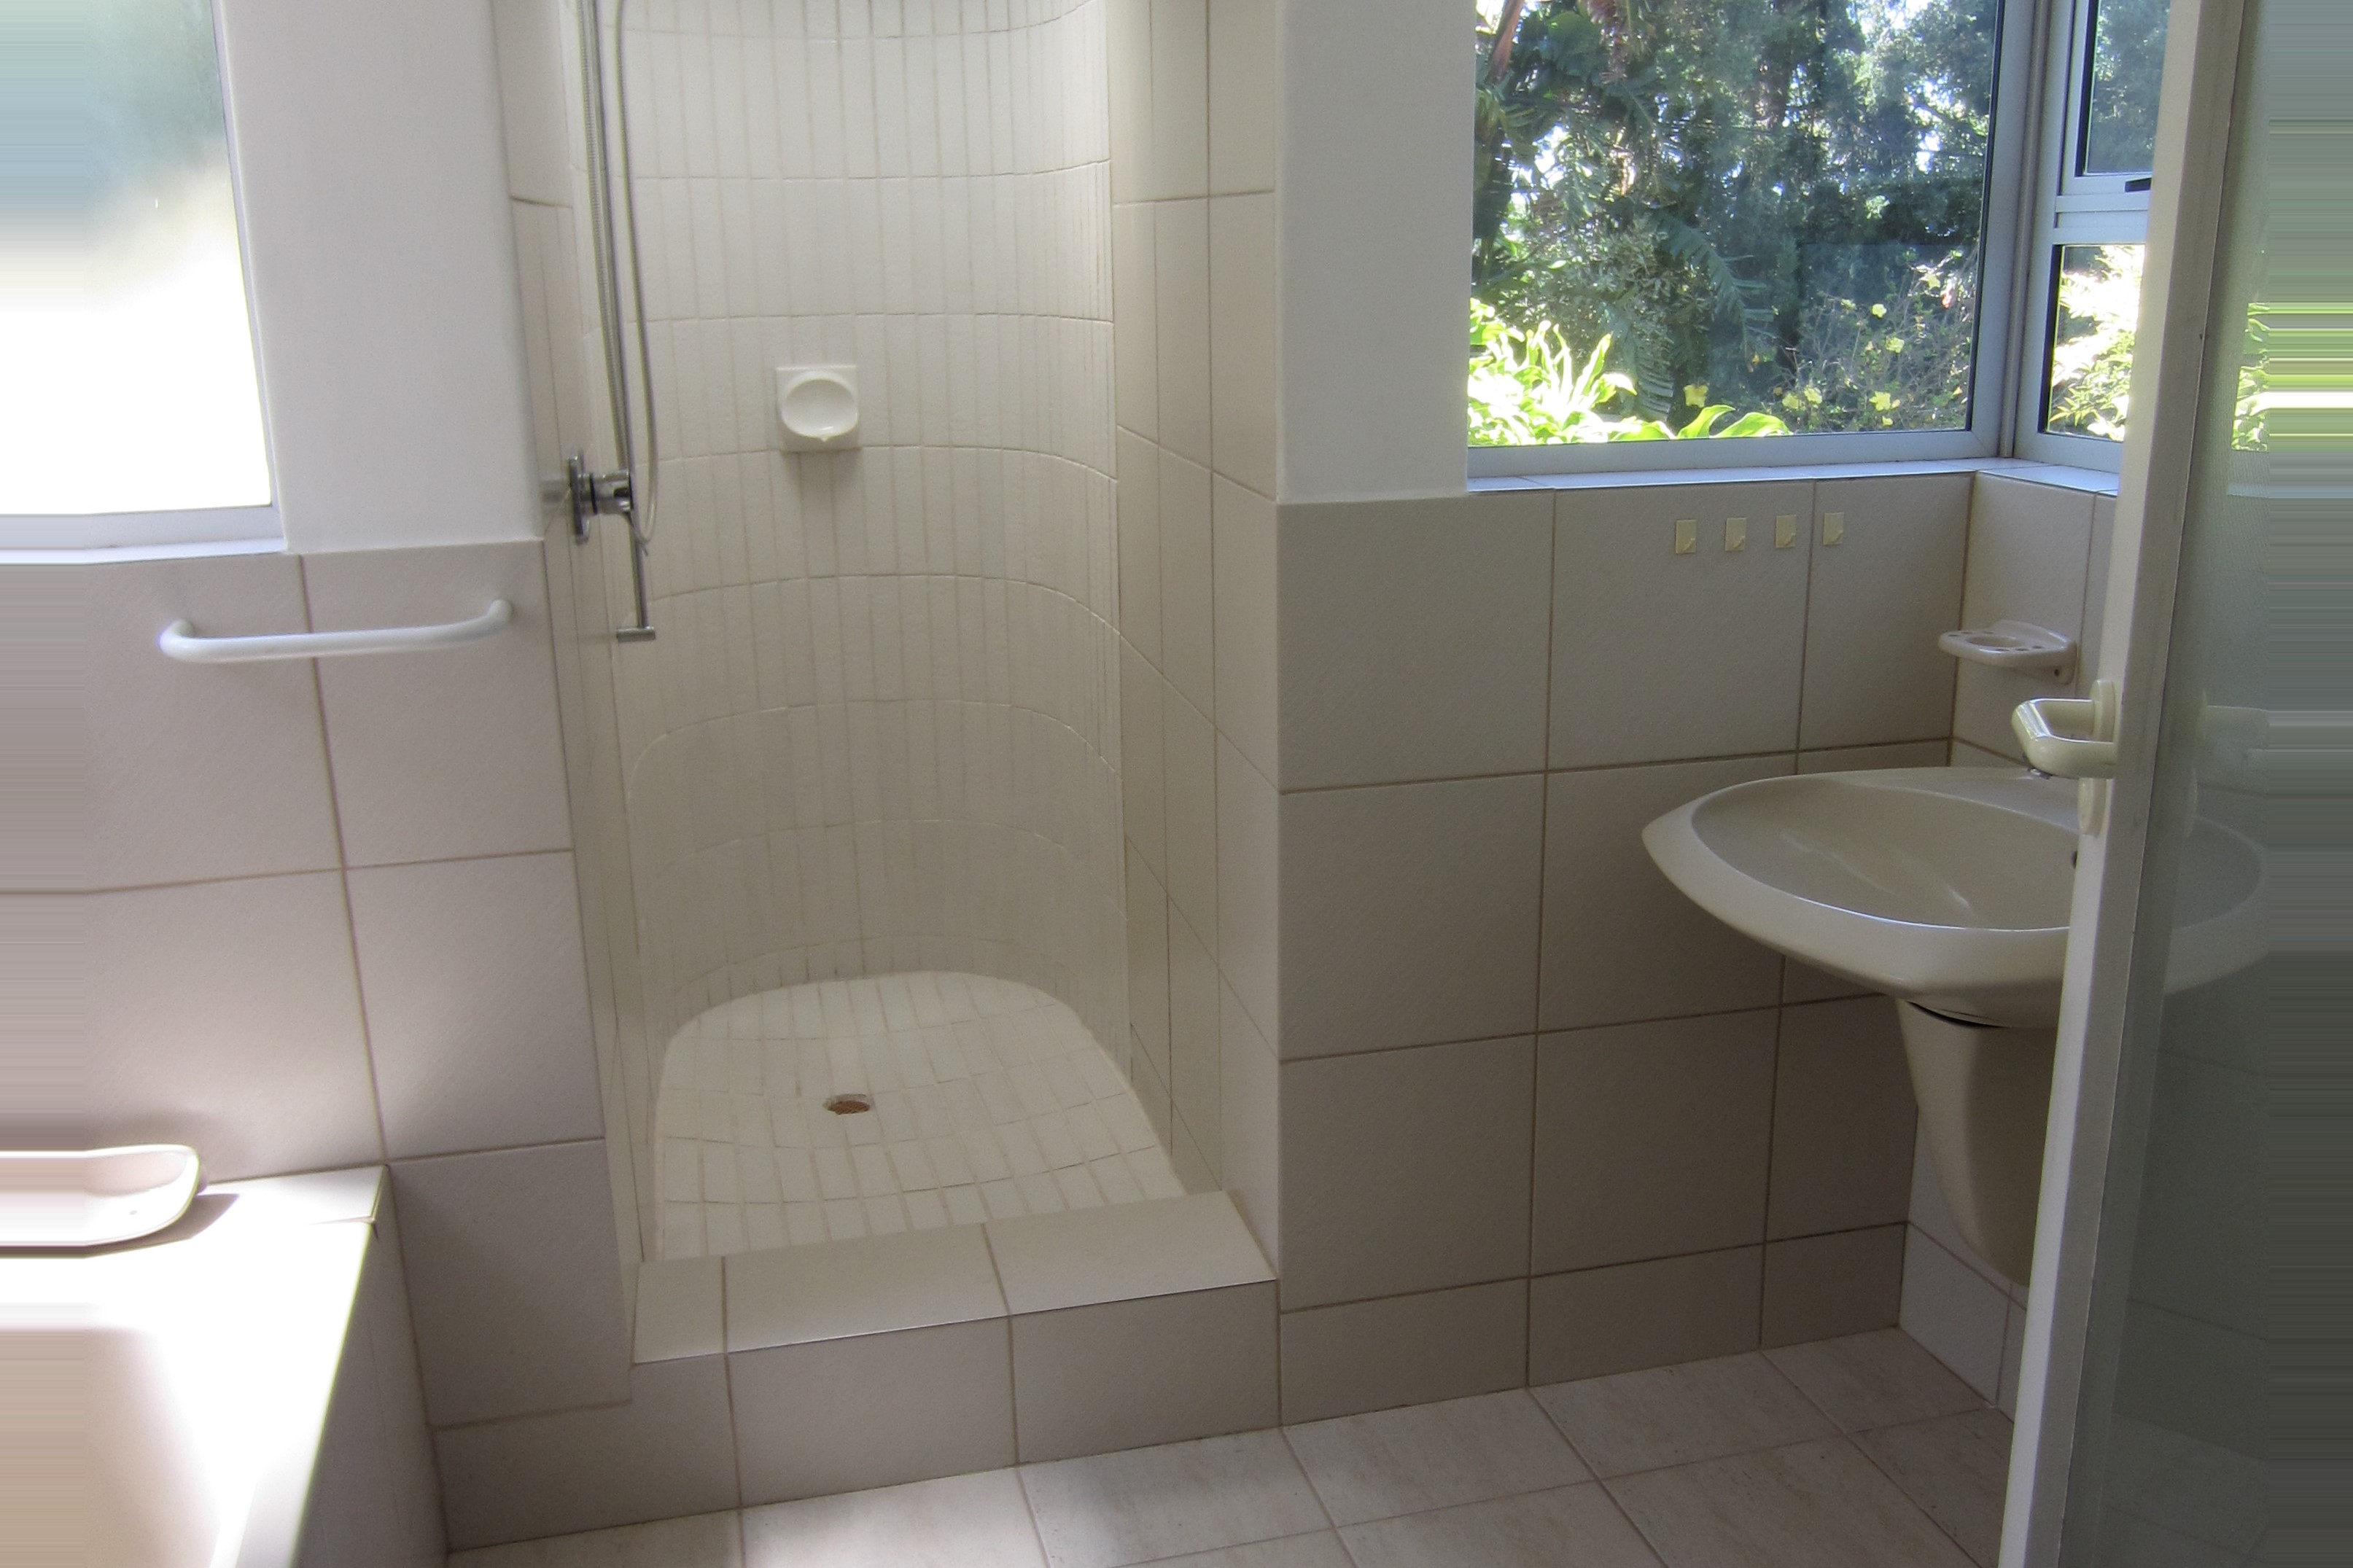 3 Bedroom House for sale in Monte Sereno ENT0015864 : photo#11